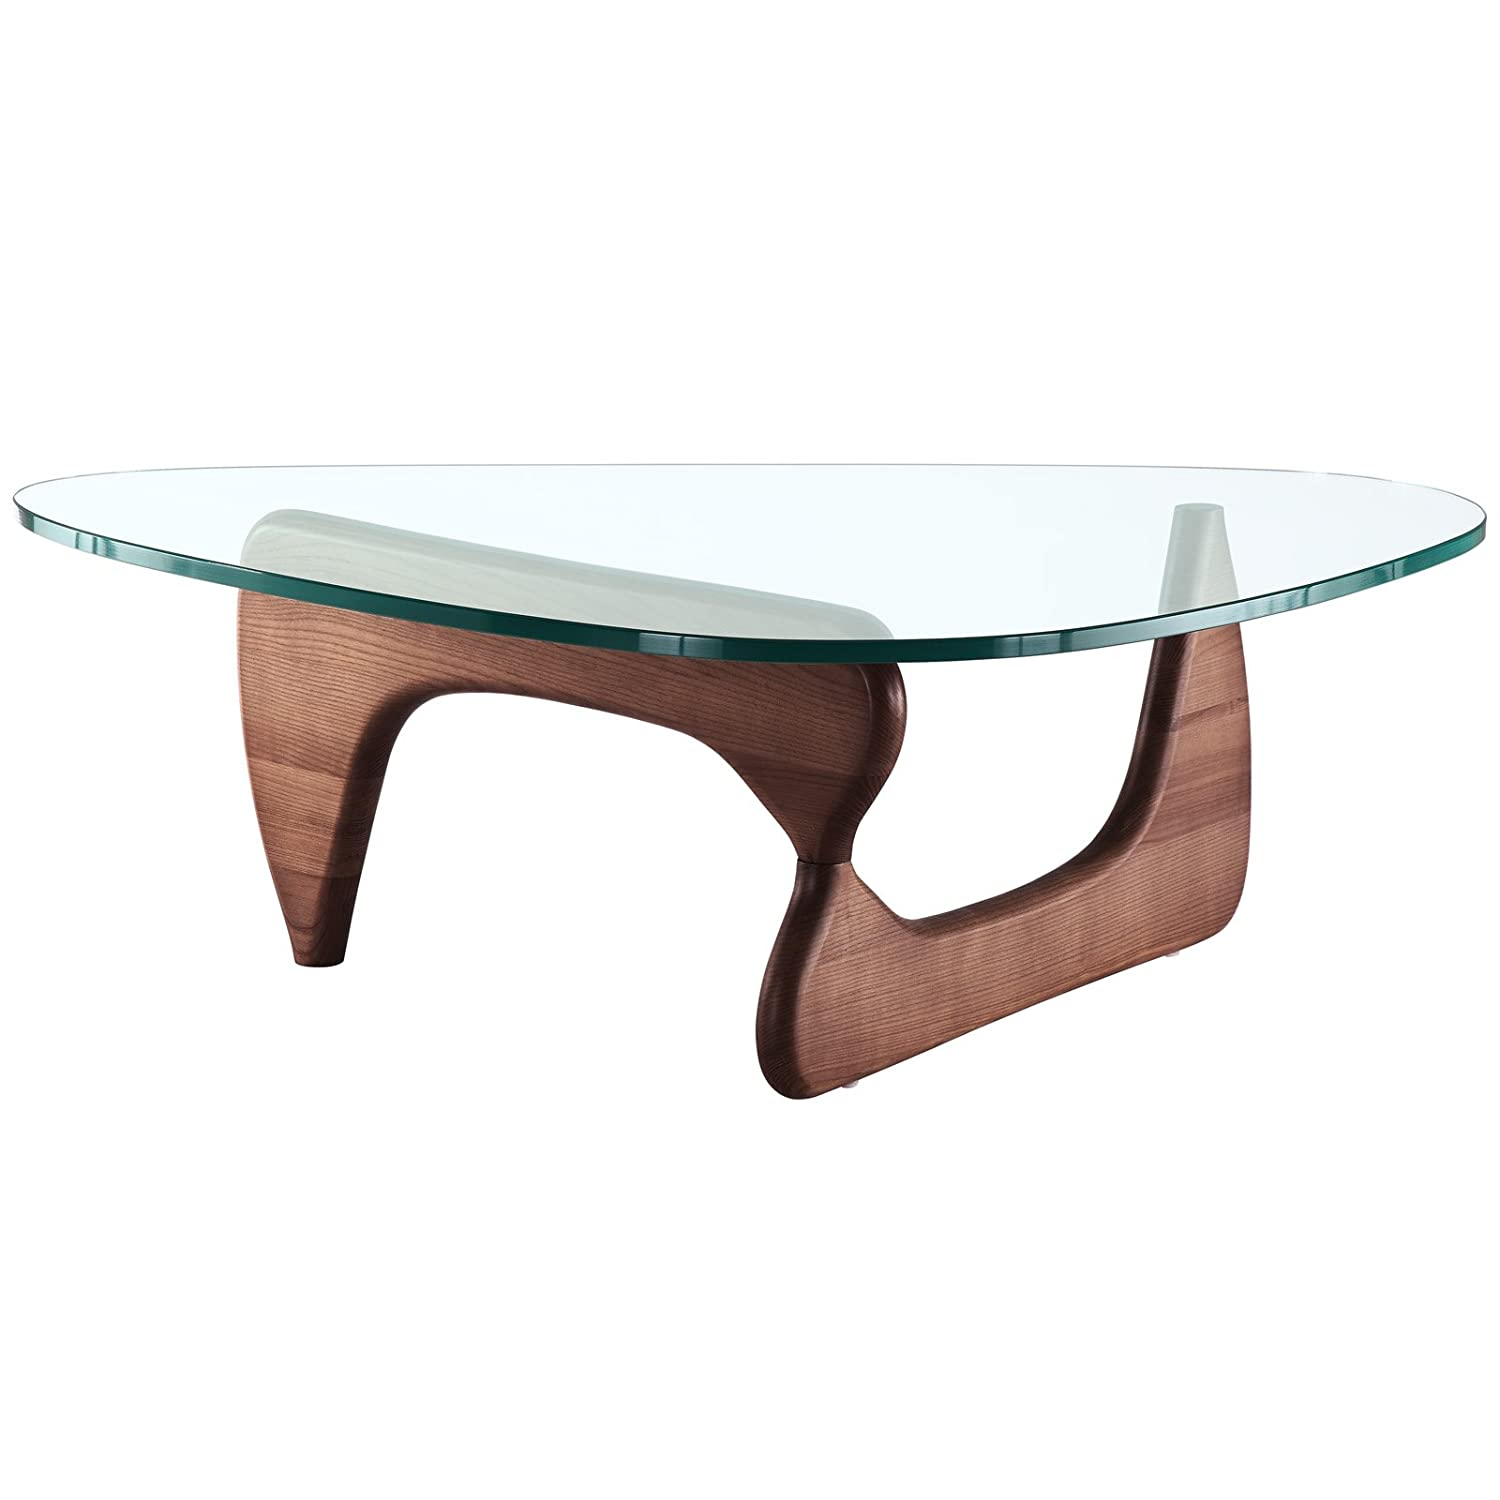 Amazoncom Modway Triangle Coffee Table In Walnut Kitchen Dining - Mid century triangle coffee table